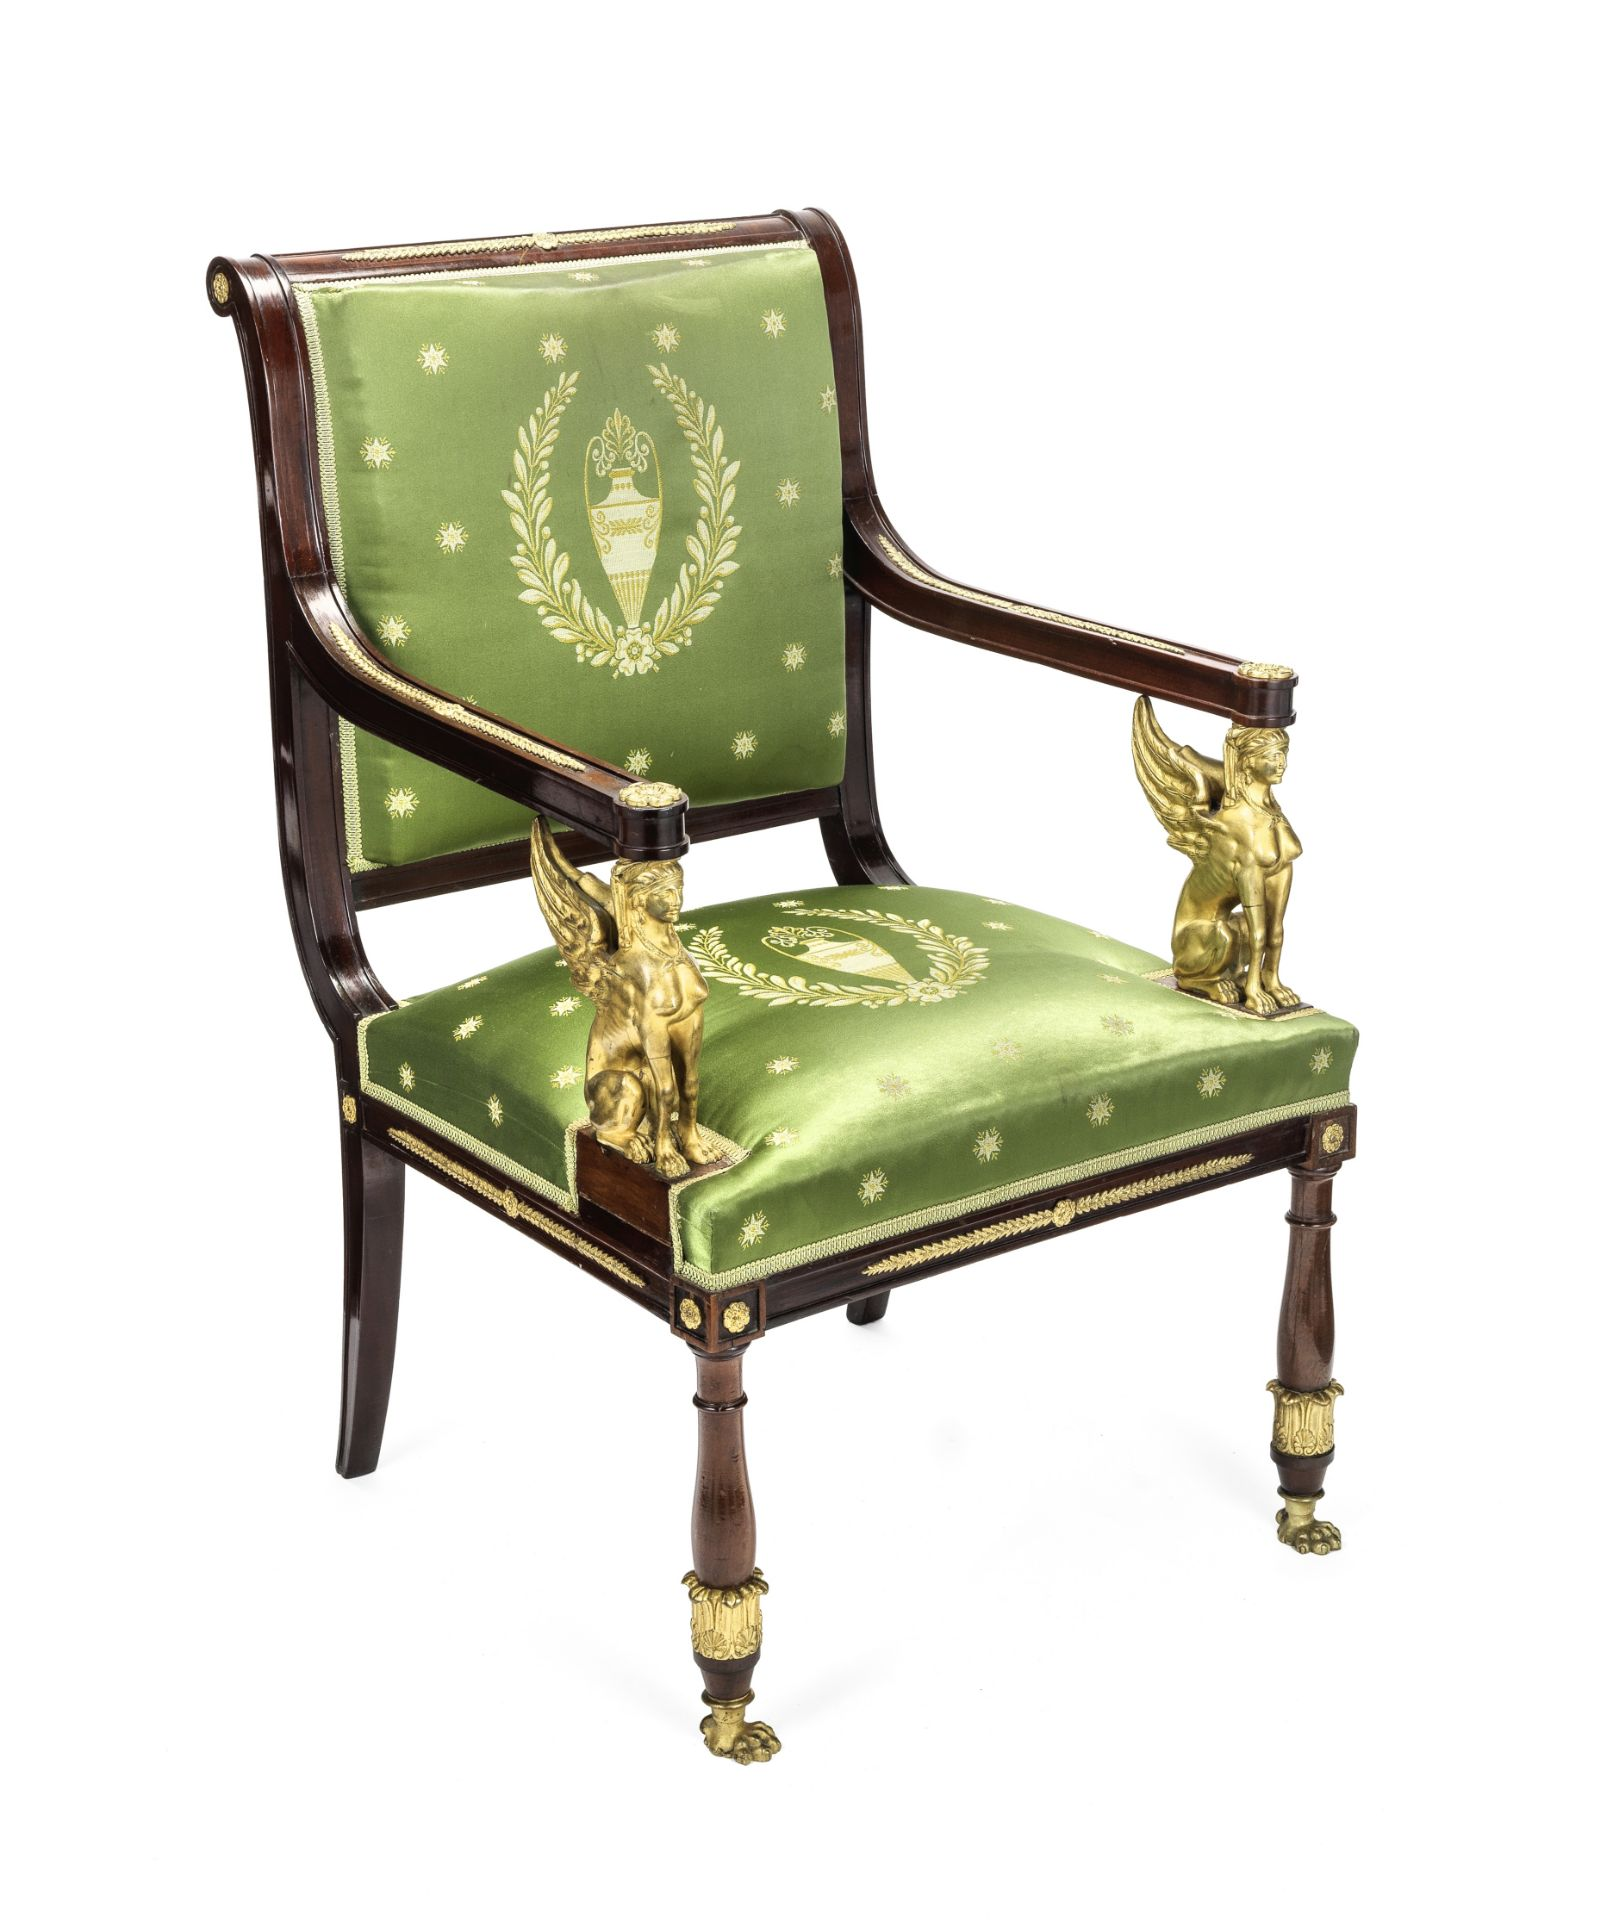 Los 49 - A French 19th century Empire revival gilt bronze mounted fauteuil